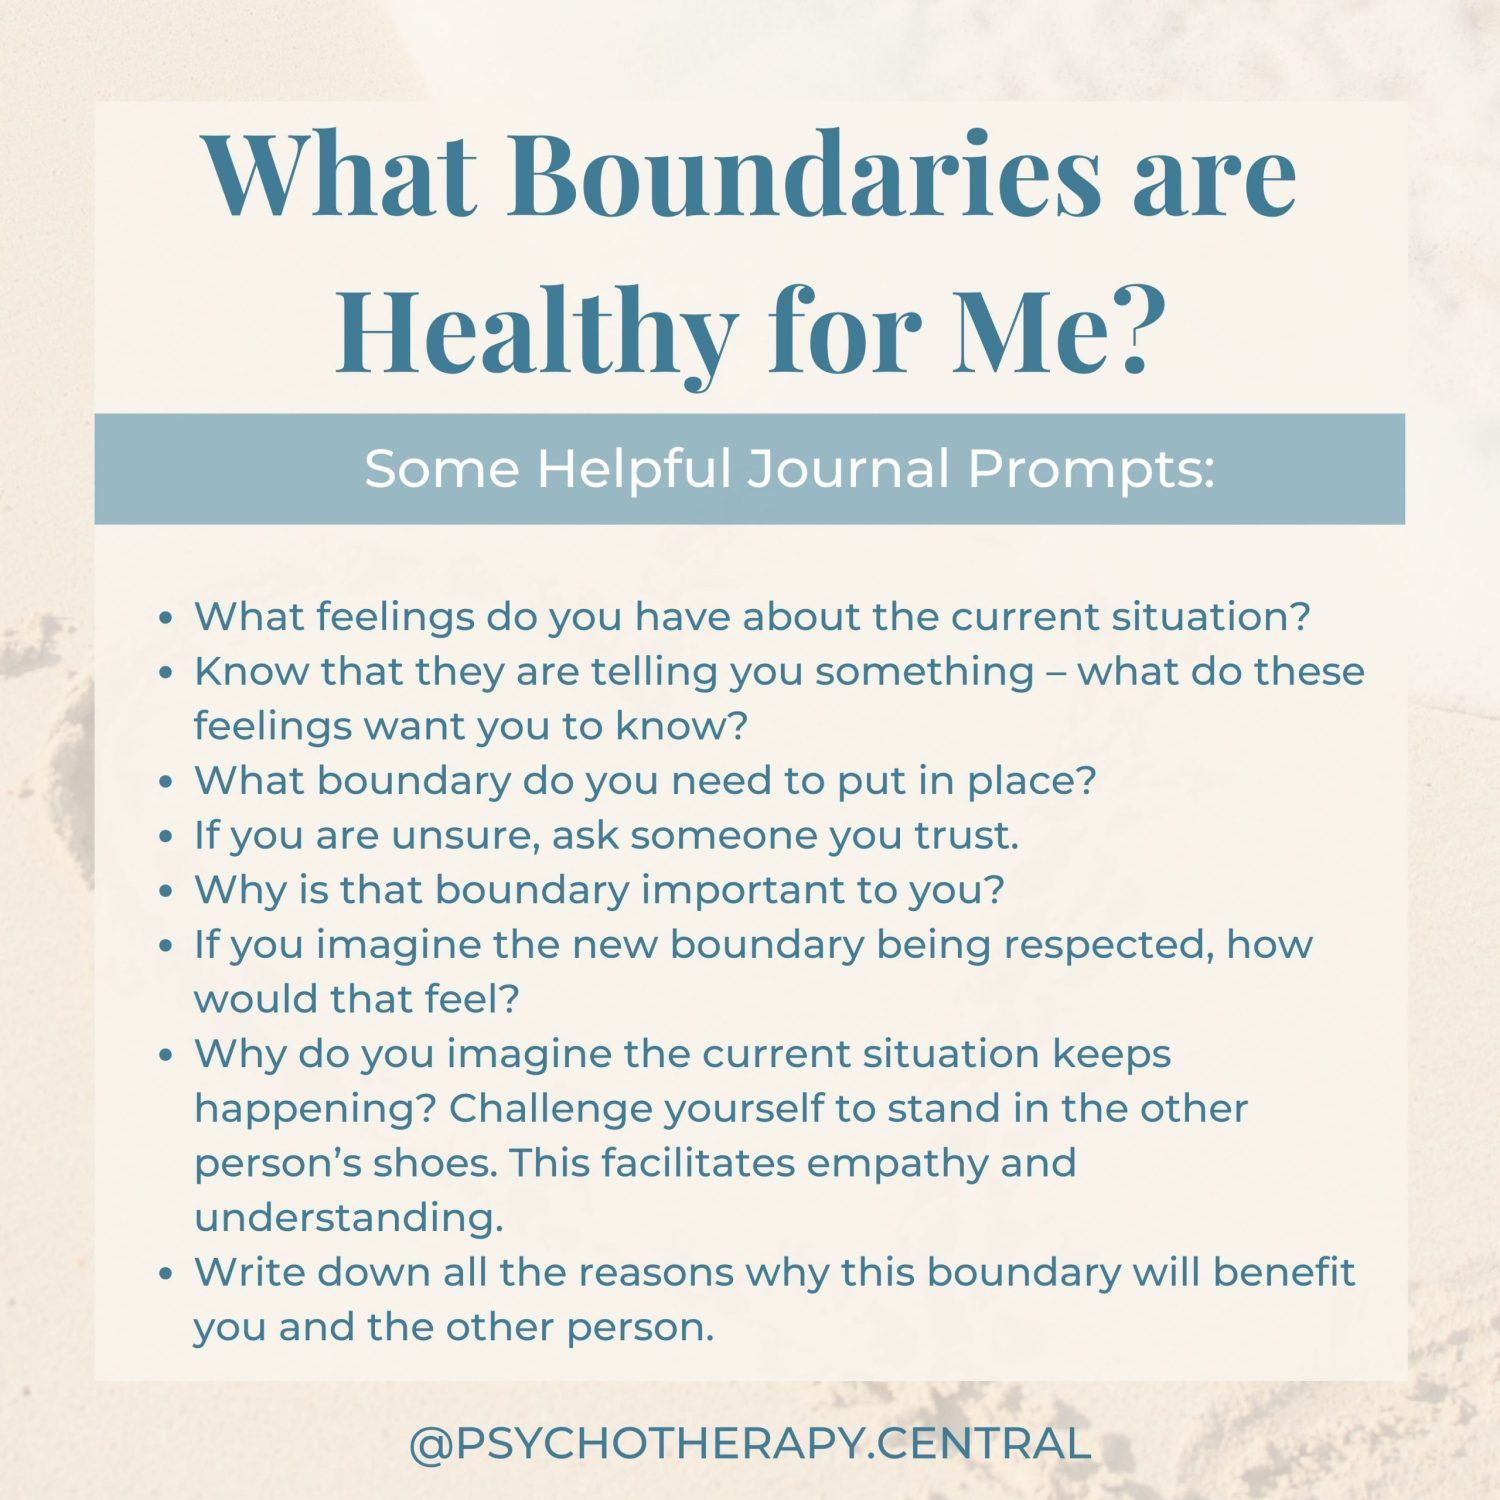 What Boundaries are Healthy for Me?